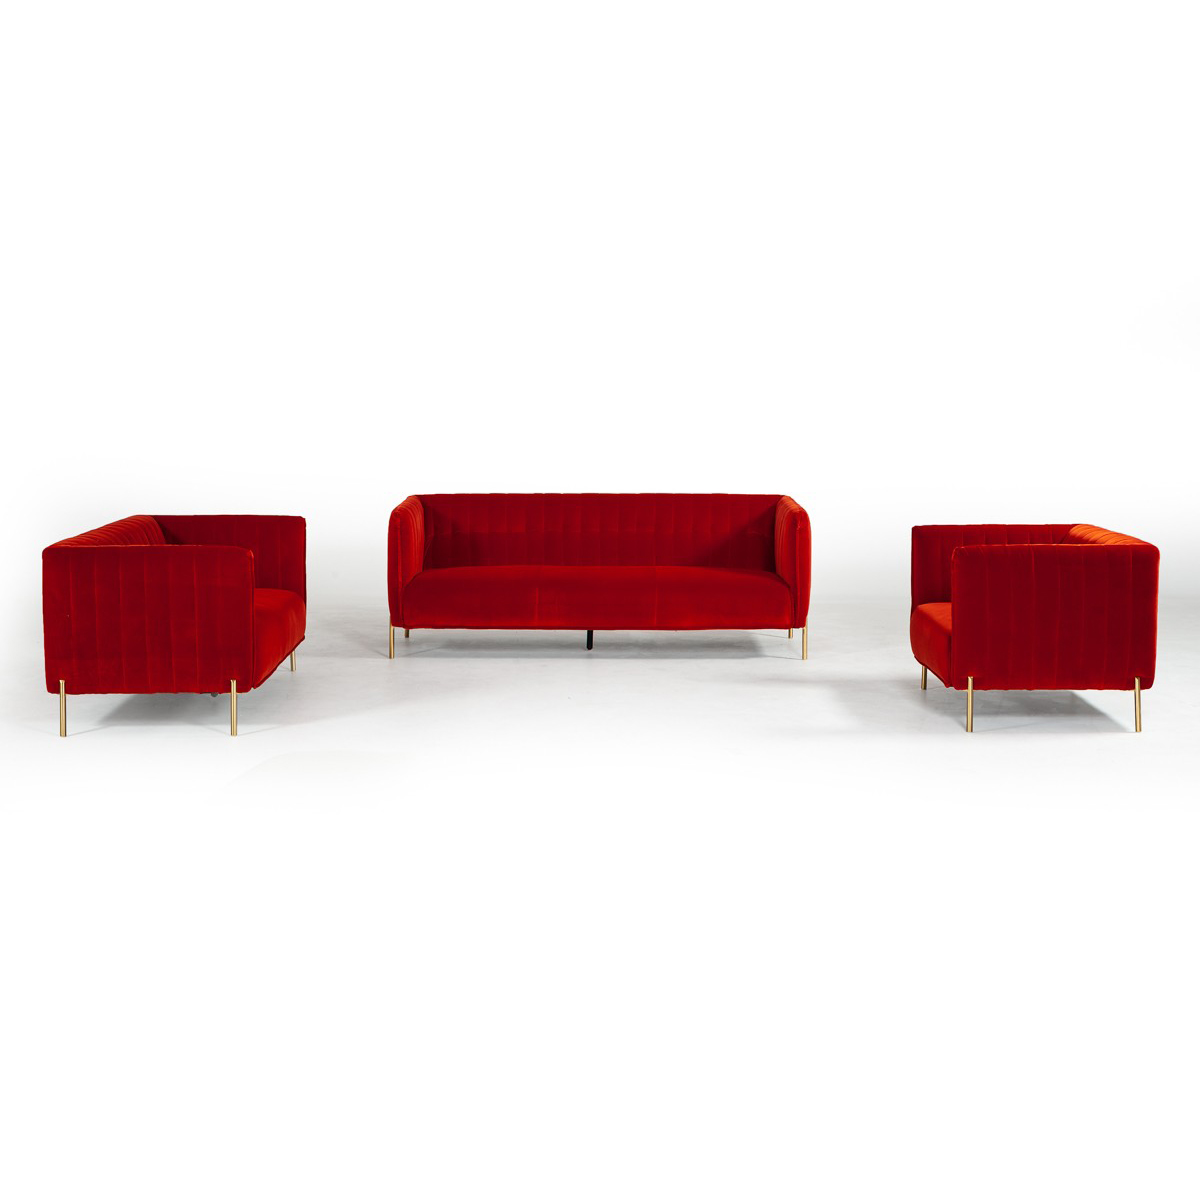 Superb Kara Sofa Set Red Event Trade Show Furniture Rental Gmtry Best Dining Table And Chair Ideas Images Gmtryco